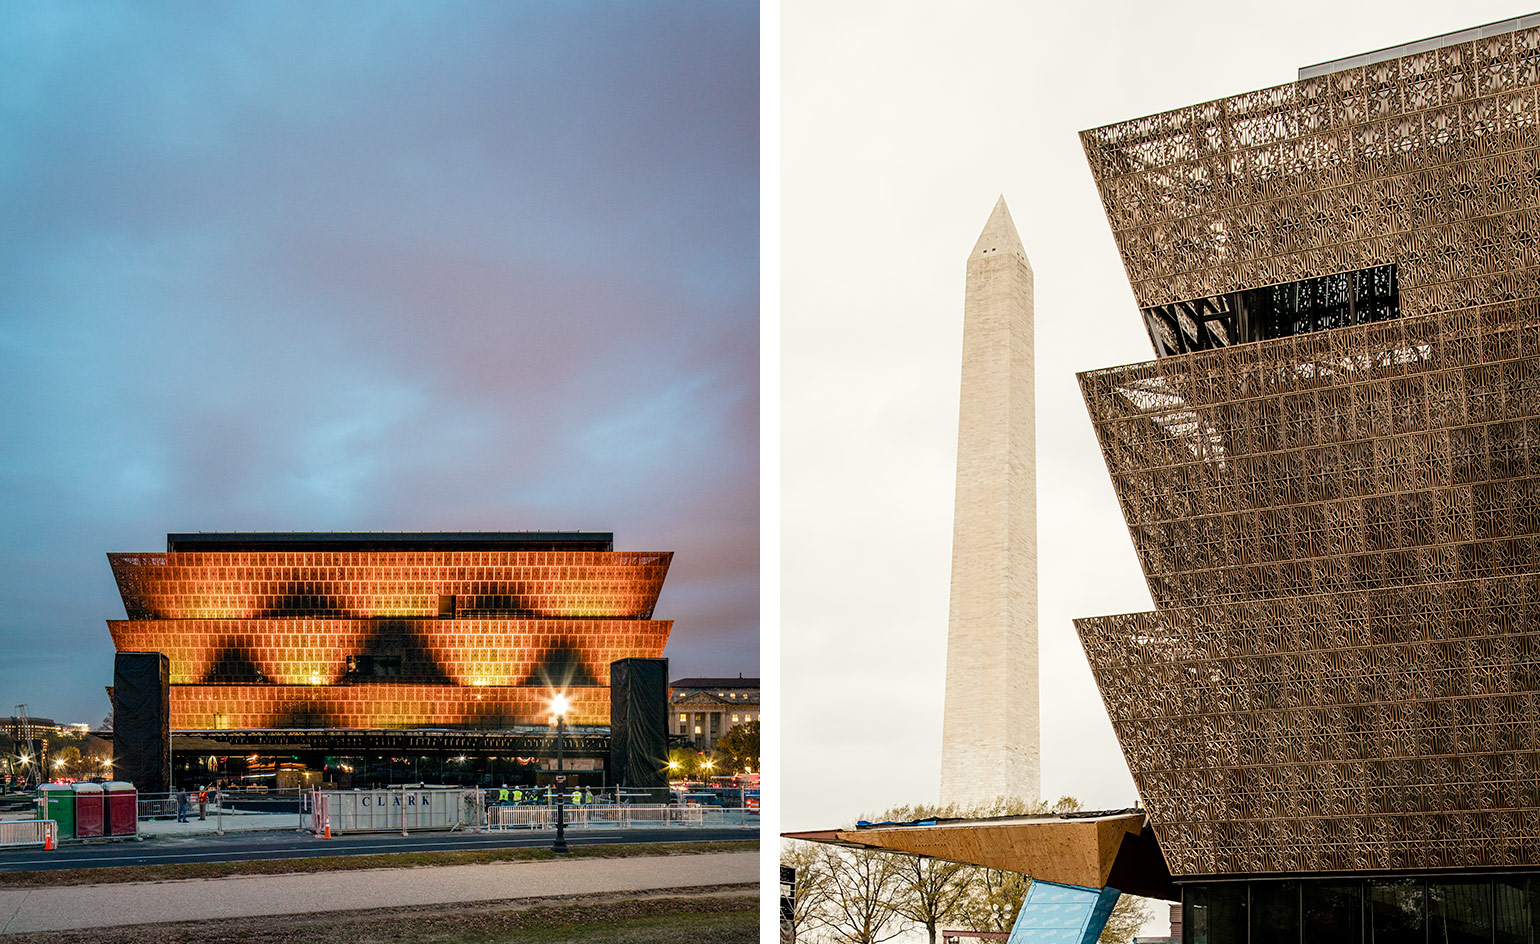 Bus Trip- National Museum of African American History - Washington, DC